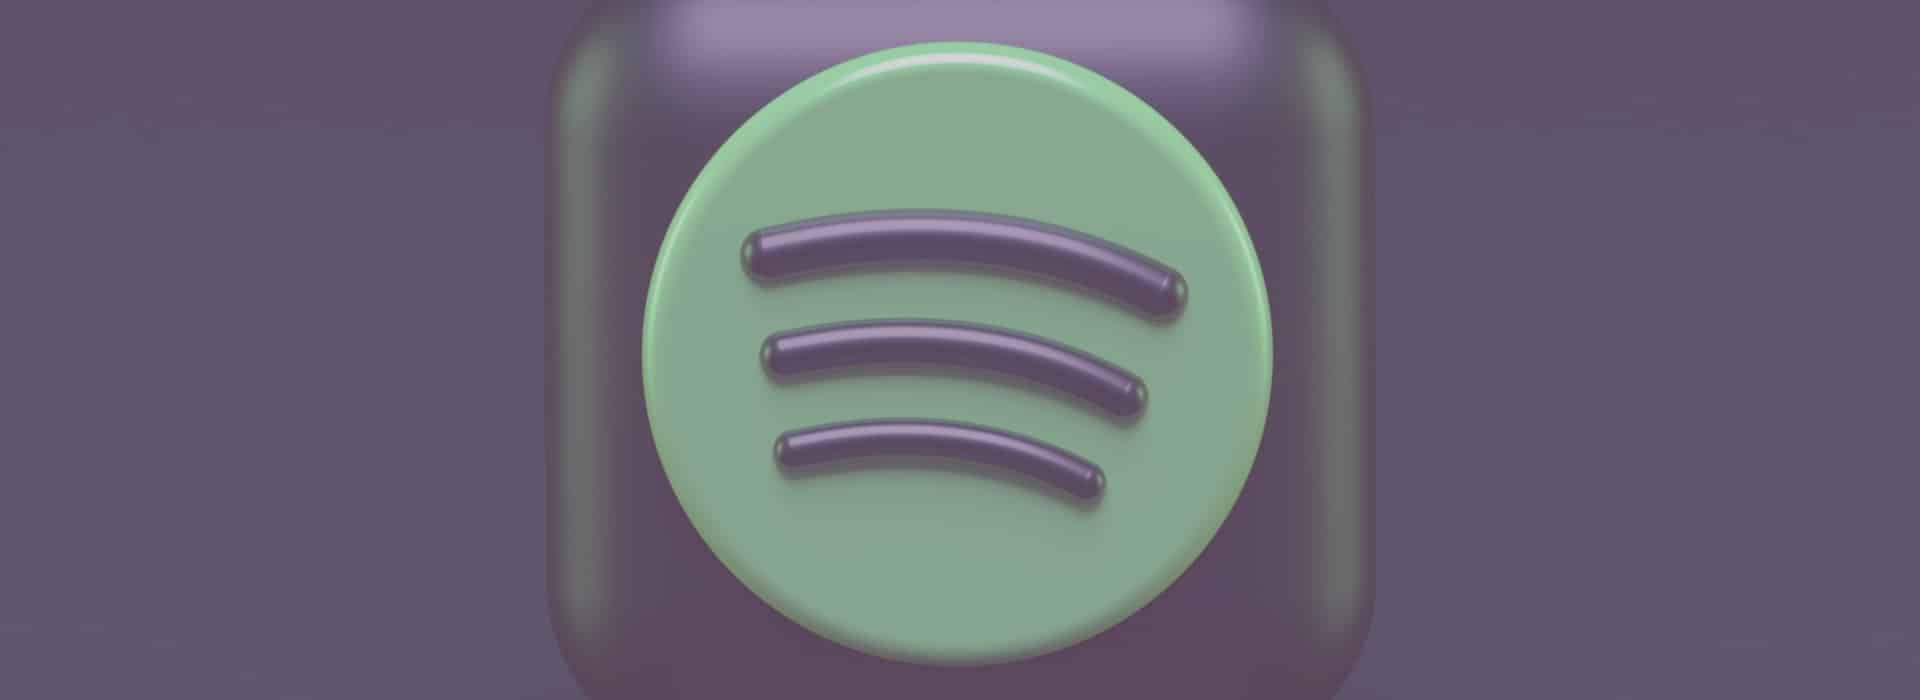 spotify-podcasters-hp2